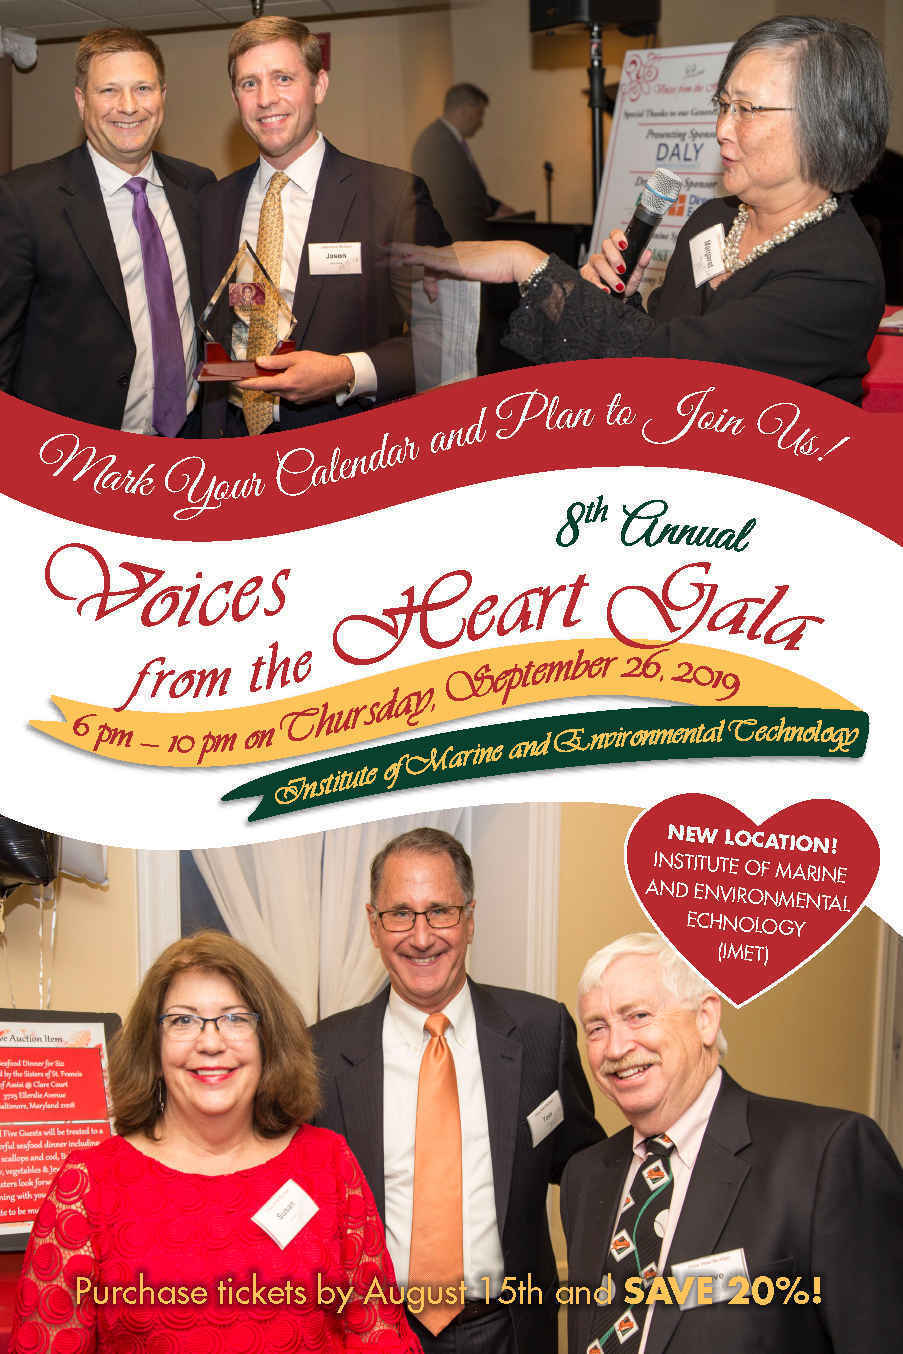 8th Annual Voices from the Heart Gala  image